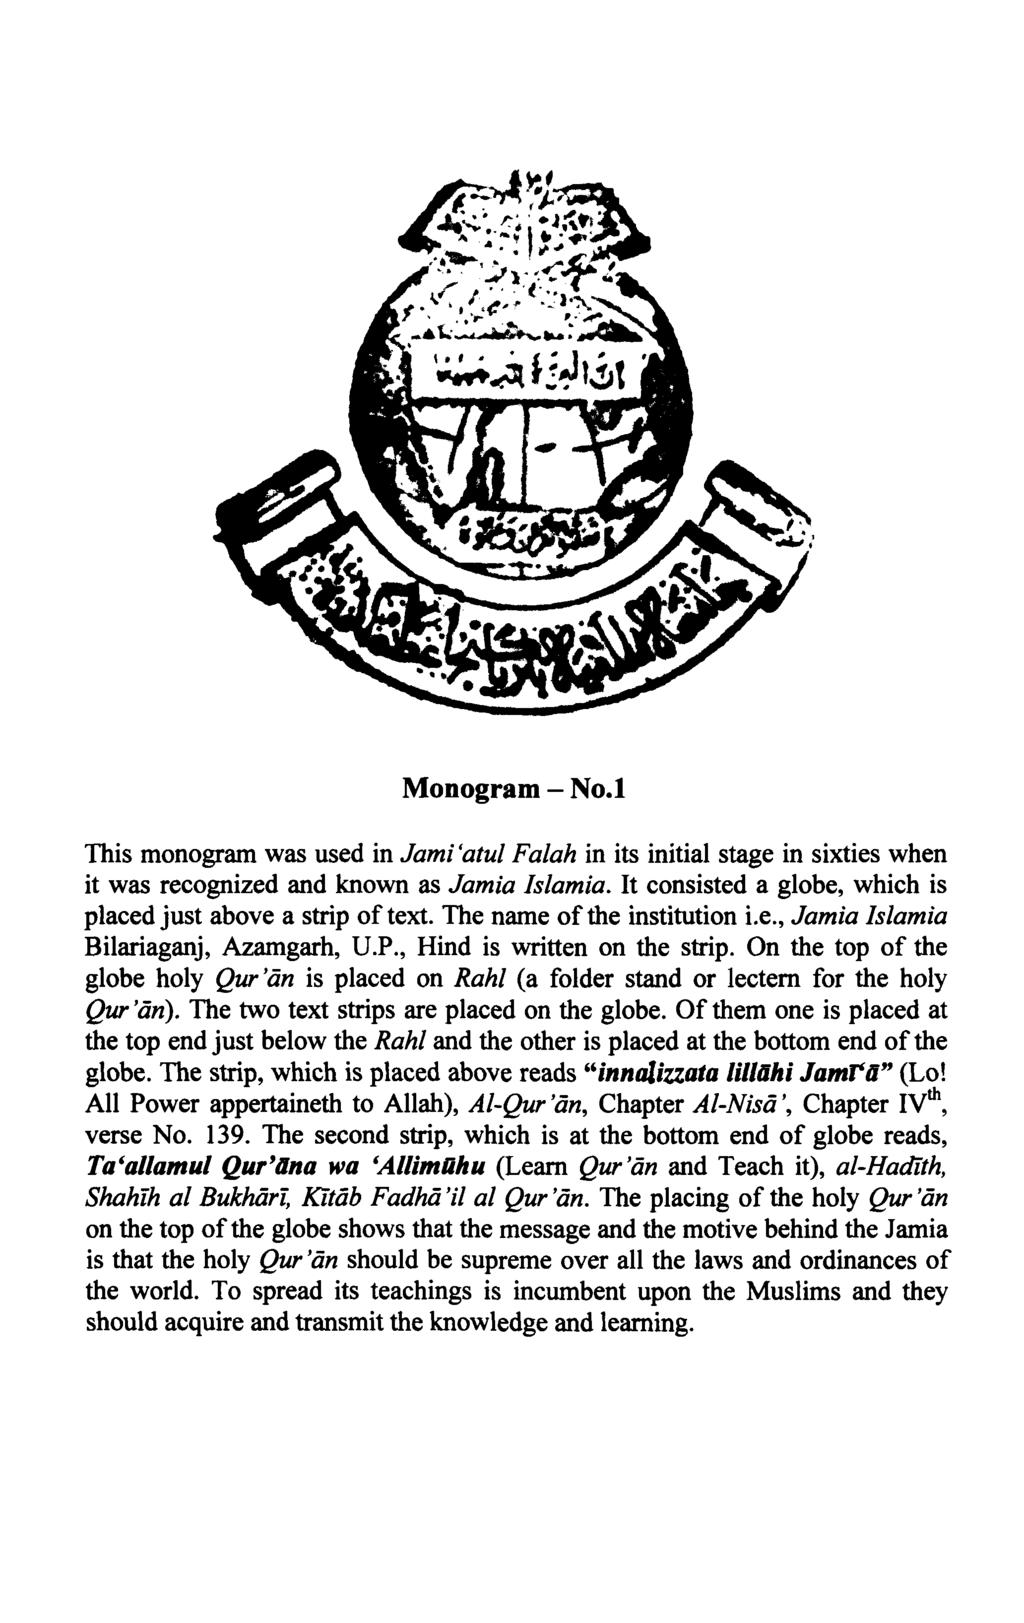 JAWrATUL FALAH IN ITS HISTORICAL AND EDUCATIONAL PERSPECTIVE